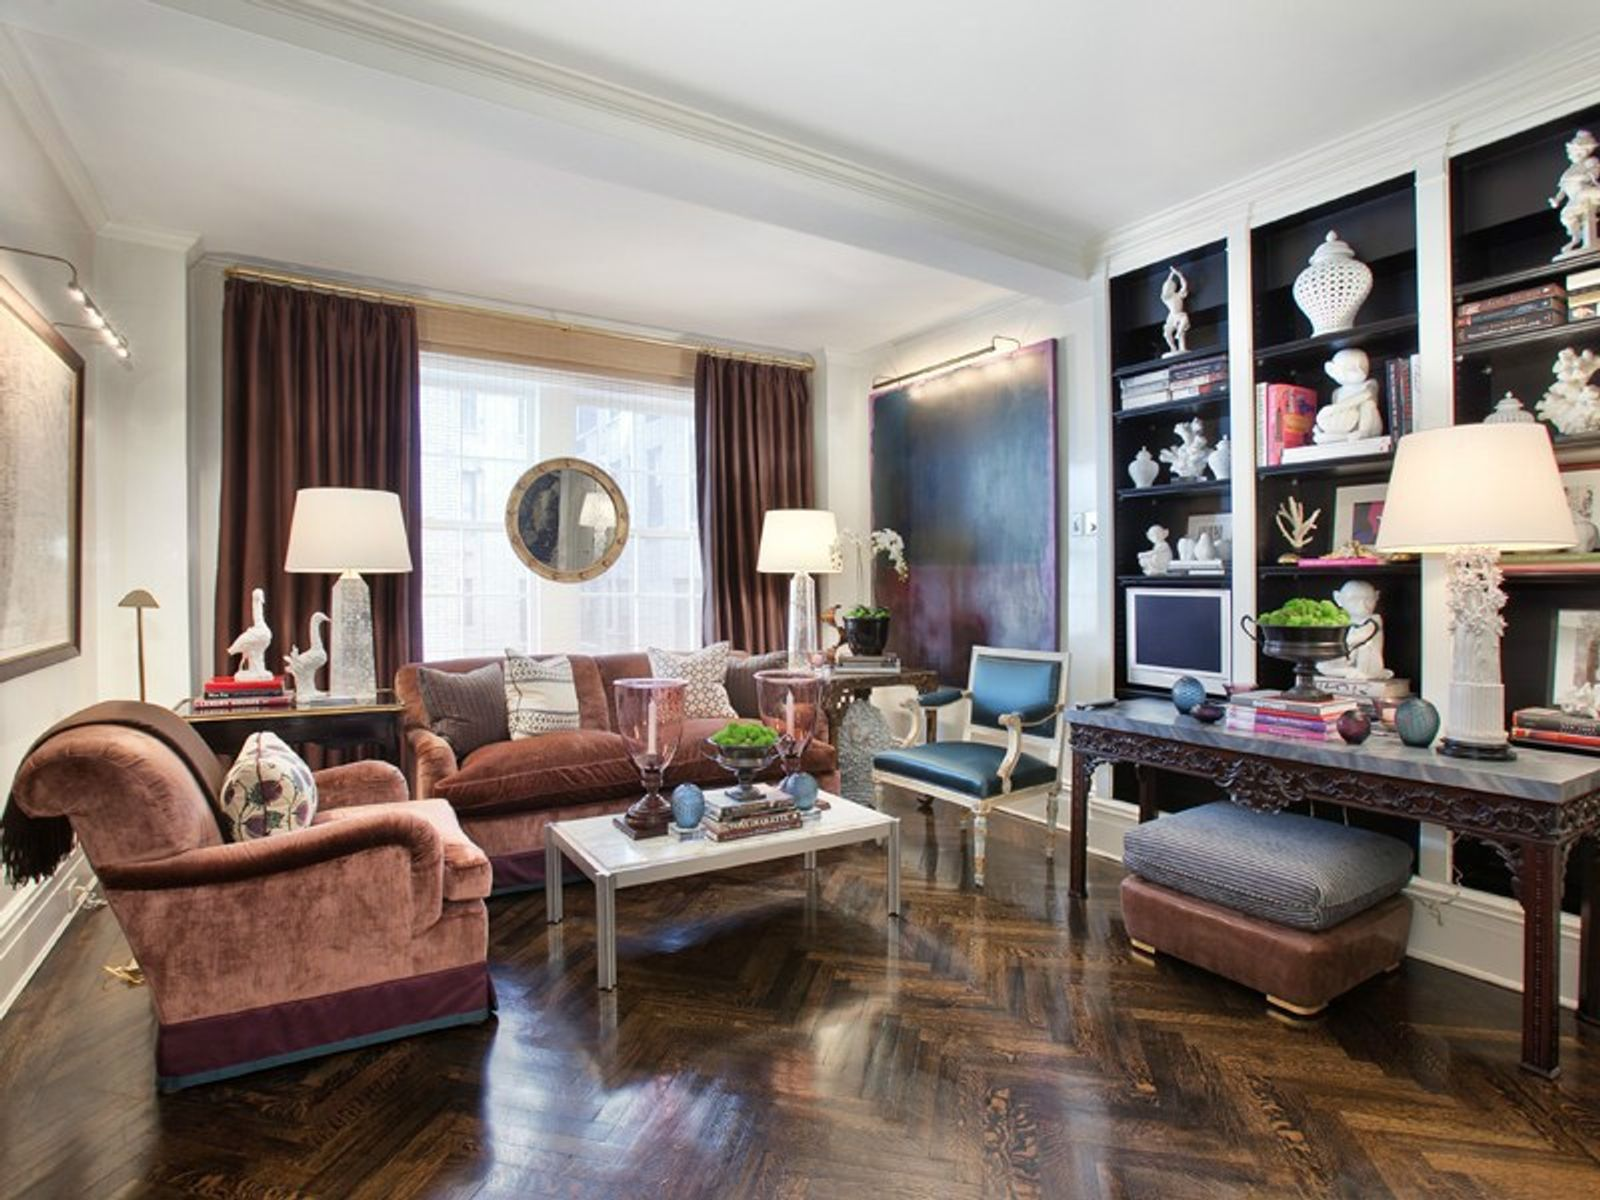 Volney, 23 East 74th Street, New York NY Coop - New York City Real Estate